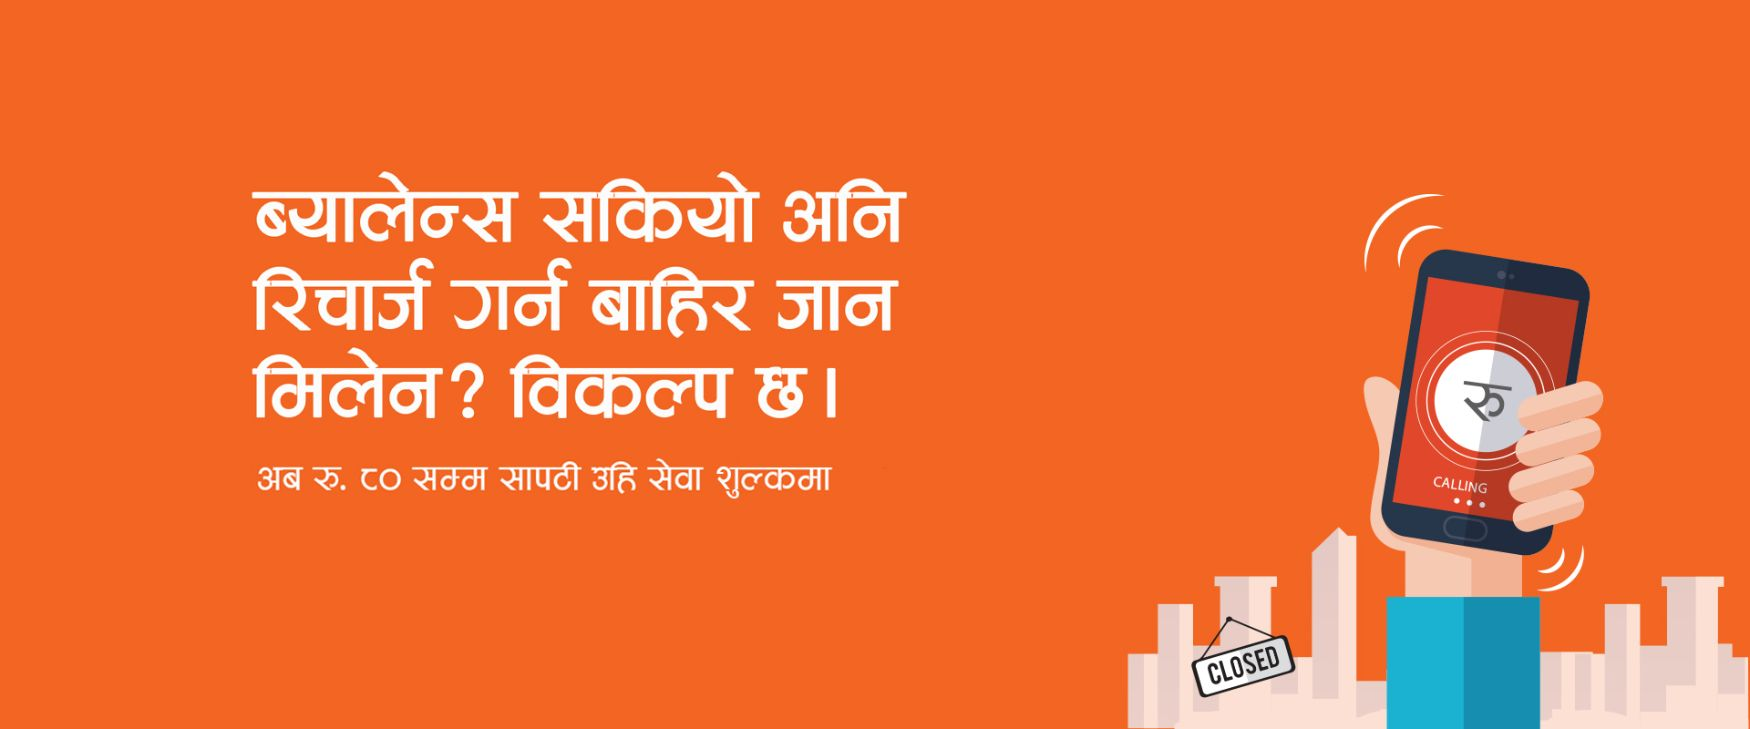 ncell 200 sapati loan offer service covid-19 nepal